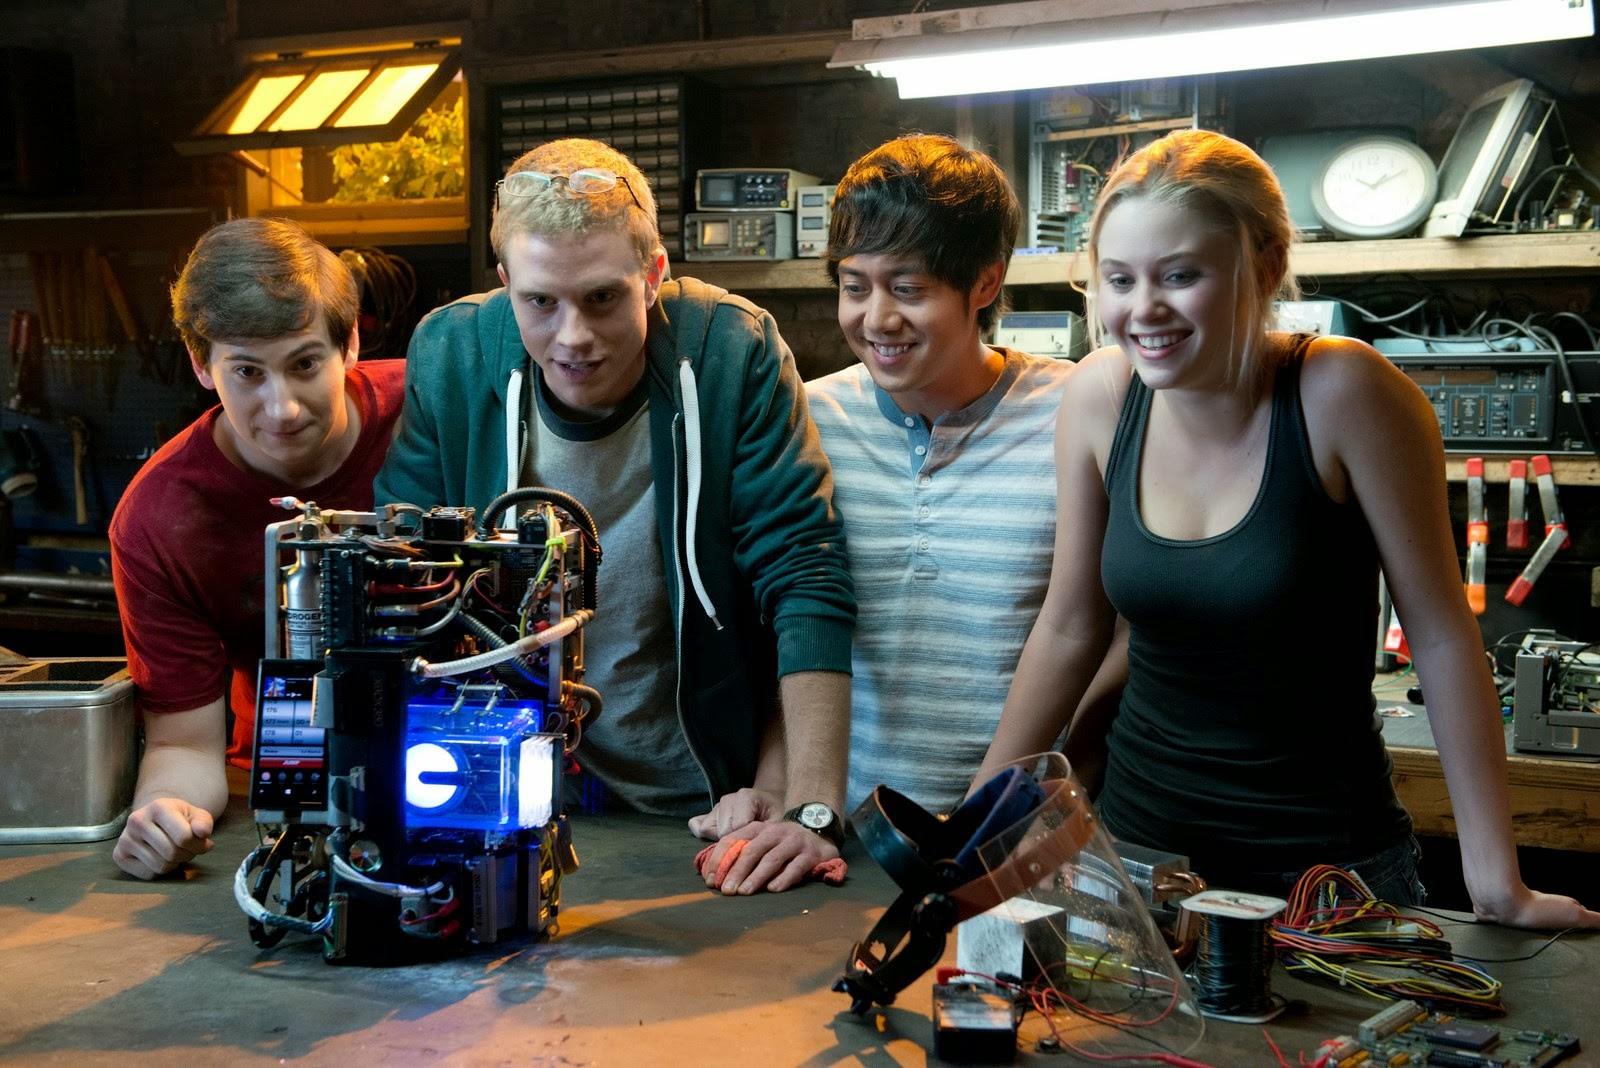 Project Almanac, Dean Israelite, Welcome to yesterday, Andrew Deutschman, Jonny Weston, Projet Almanac, David Raskin, Groundhog Day, Looper, Back to the future, Chronicle, Project X, Projet X, Sofia Black-D'Elia, Jessie Pierce, Sam Lerner, Quinn Goldberg, Allen Evangelista, Adam Le, Virginia Gardner, Christina Raskin, Amy Landecker, Kathy Raskin, Gary Weeks, Ben Raskin, Macsen Lintz, Gary Grubbs, Dr. Lou, Michelle DeFraites, Sarah Nathan, Joe Dante, Michael Bay, Platinum Dunes, geekmehard, geek me hard, test, trailer, critique, avis, comic-book, comics, film, chronique, article